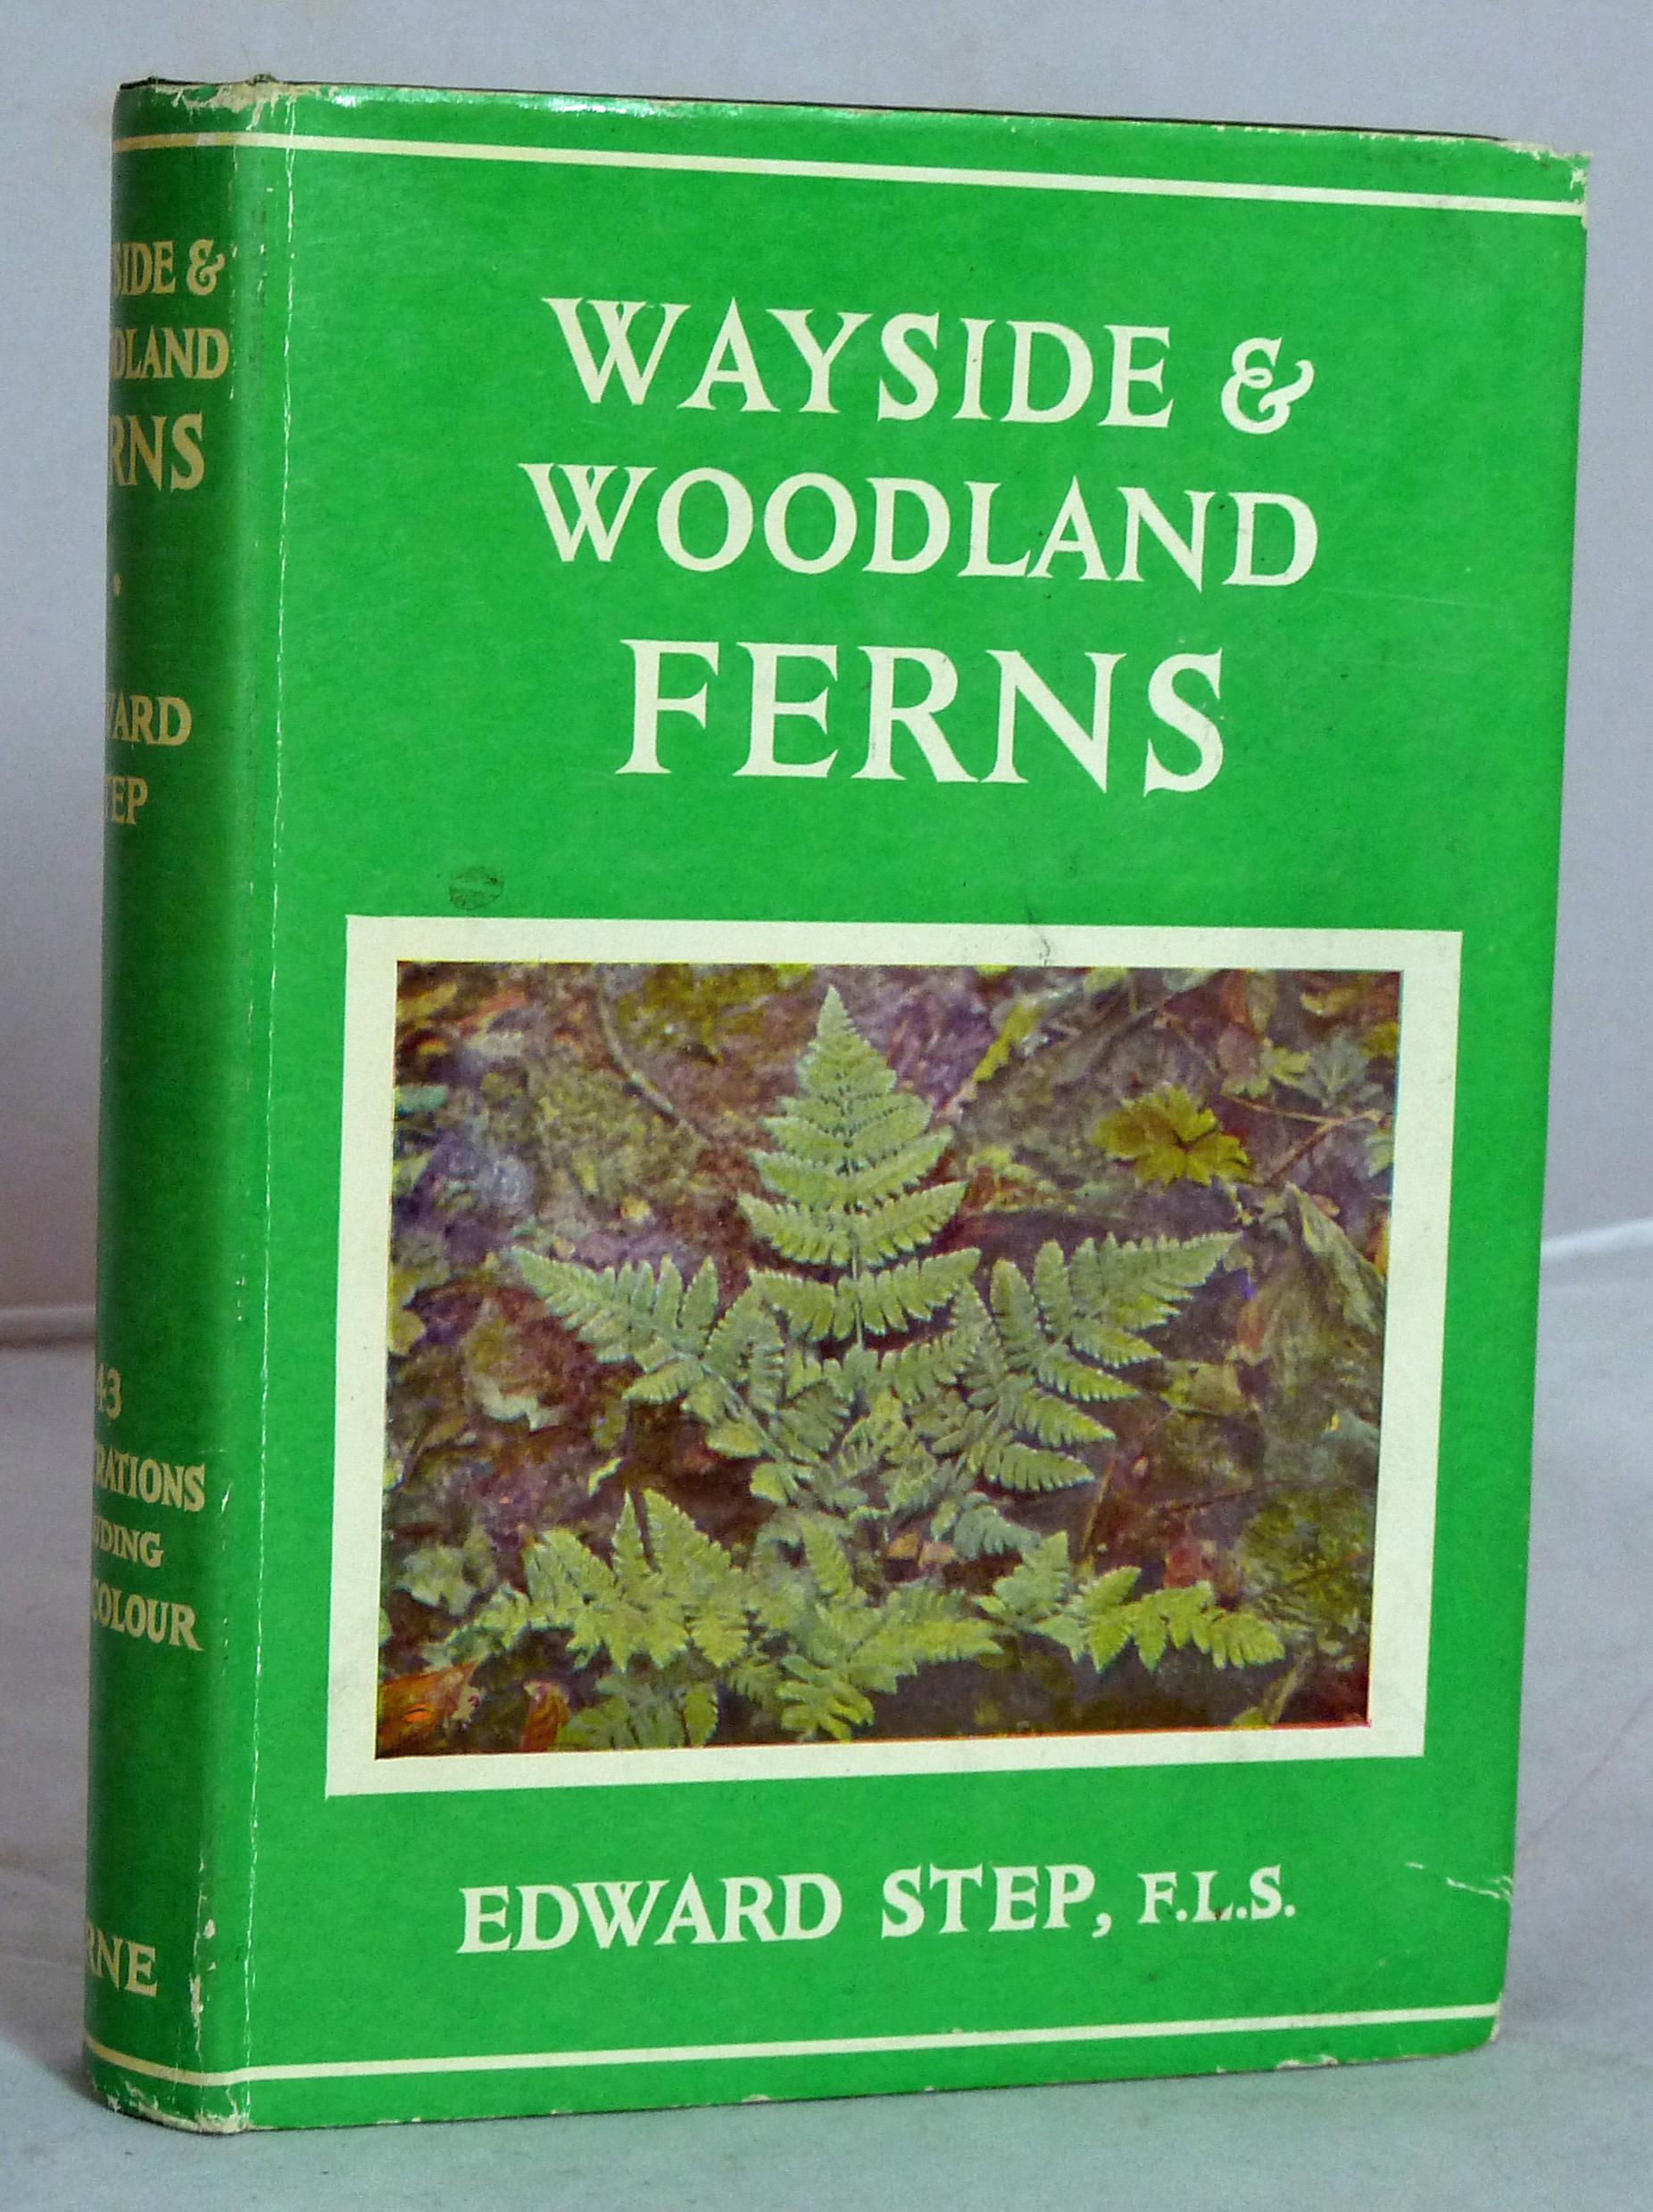 The Wayside And Woodland Series. Wayside & Woodland Ferns